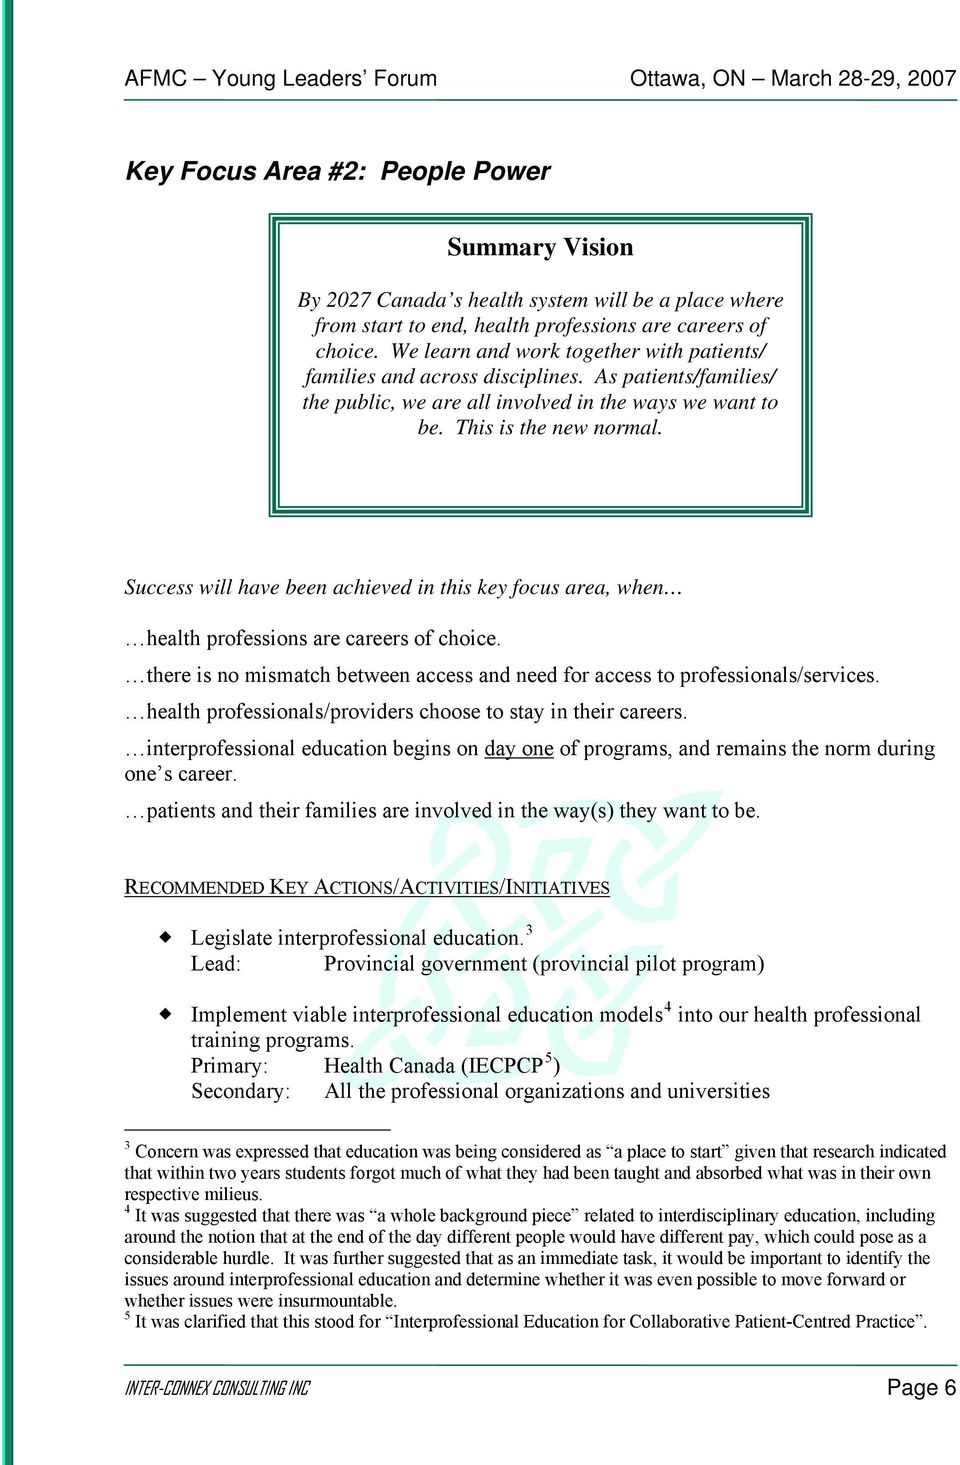 Success will have been achieved in this key focus area, when health professions are careers of choice. there is no mismatch between access and need for access to professionals/services.